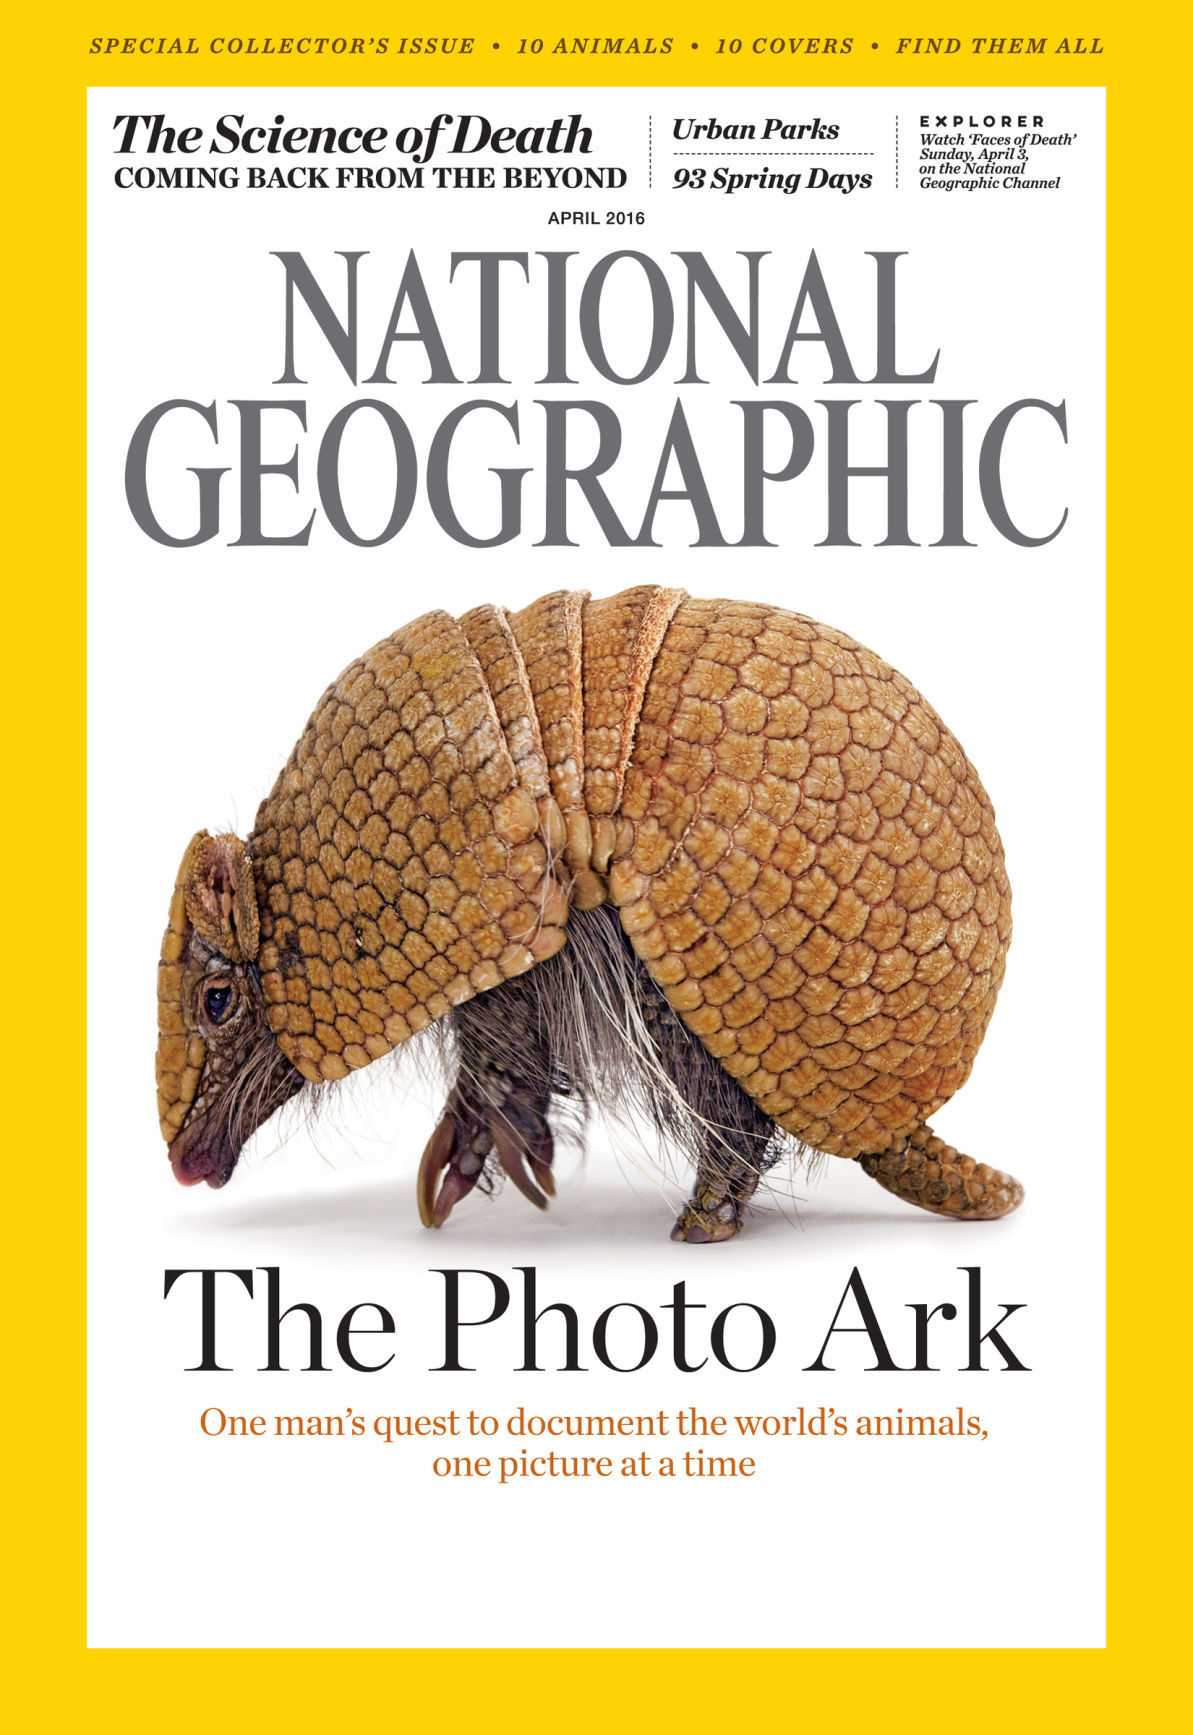 Image of: Grizzly Sartores Photos Lincoln Zoo Animals Featured On 10 National Geographic Covers Science National Geographic Live Joel Sartore Capturing Endangered